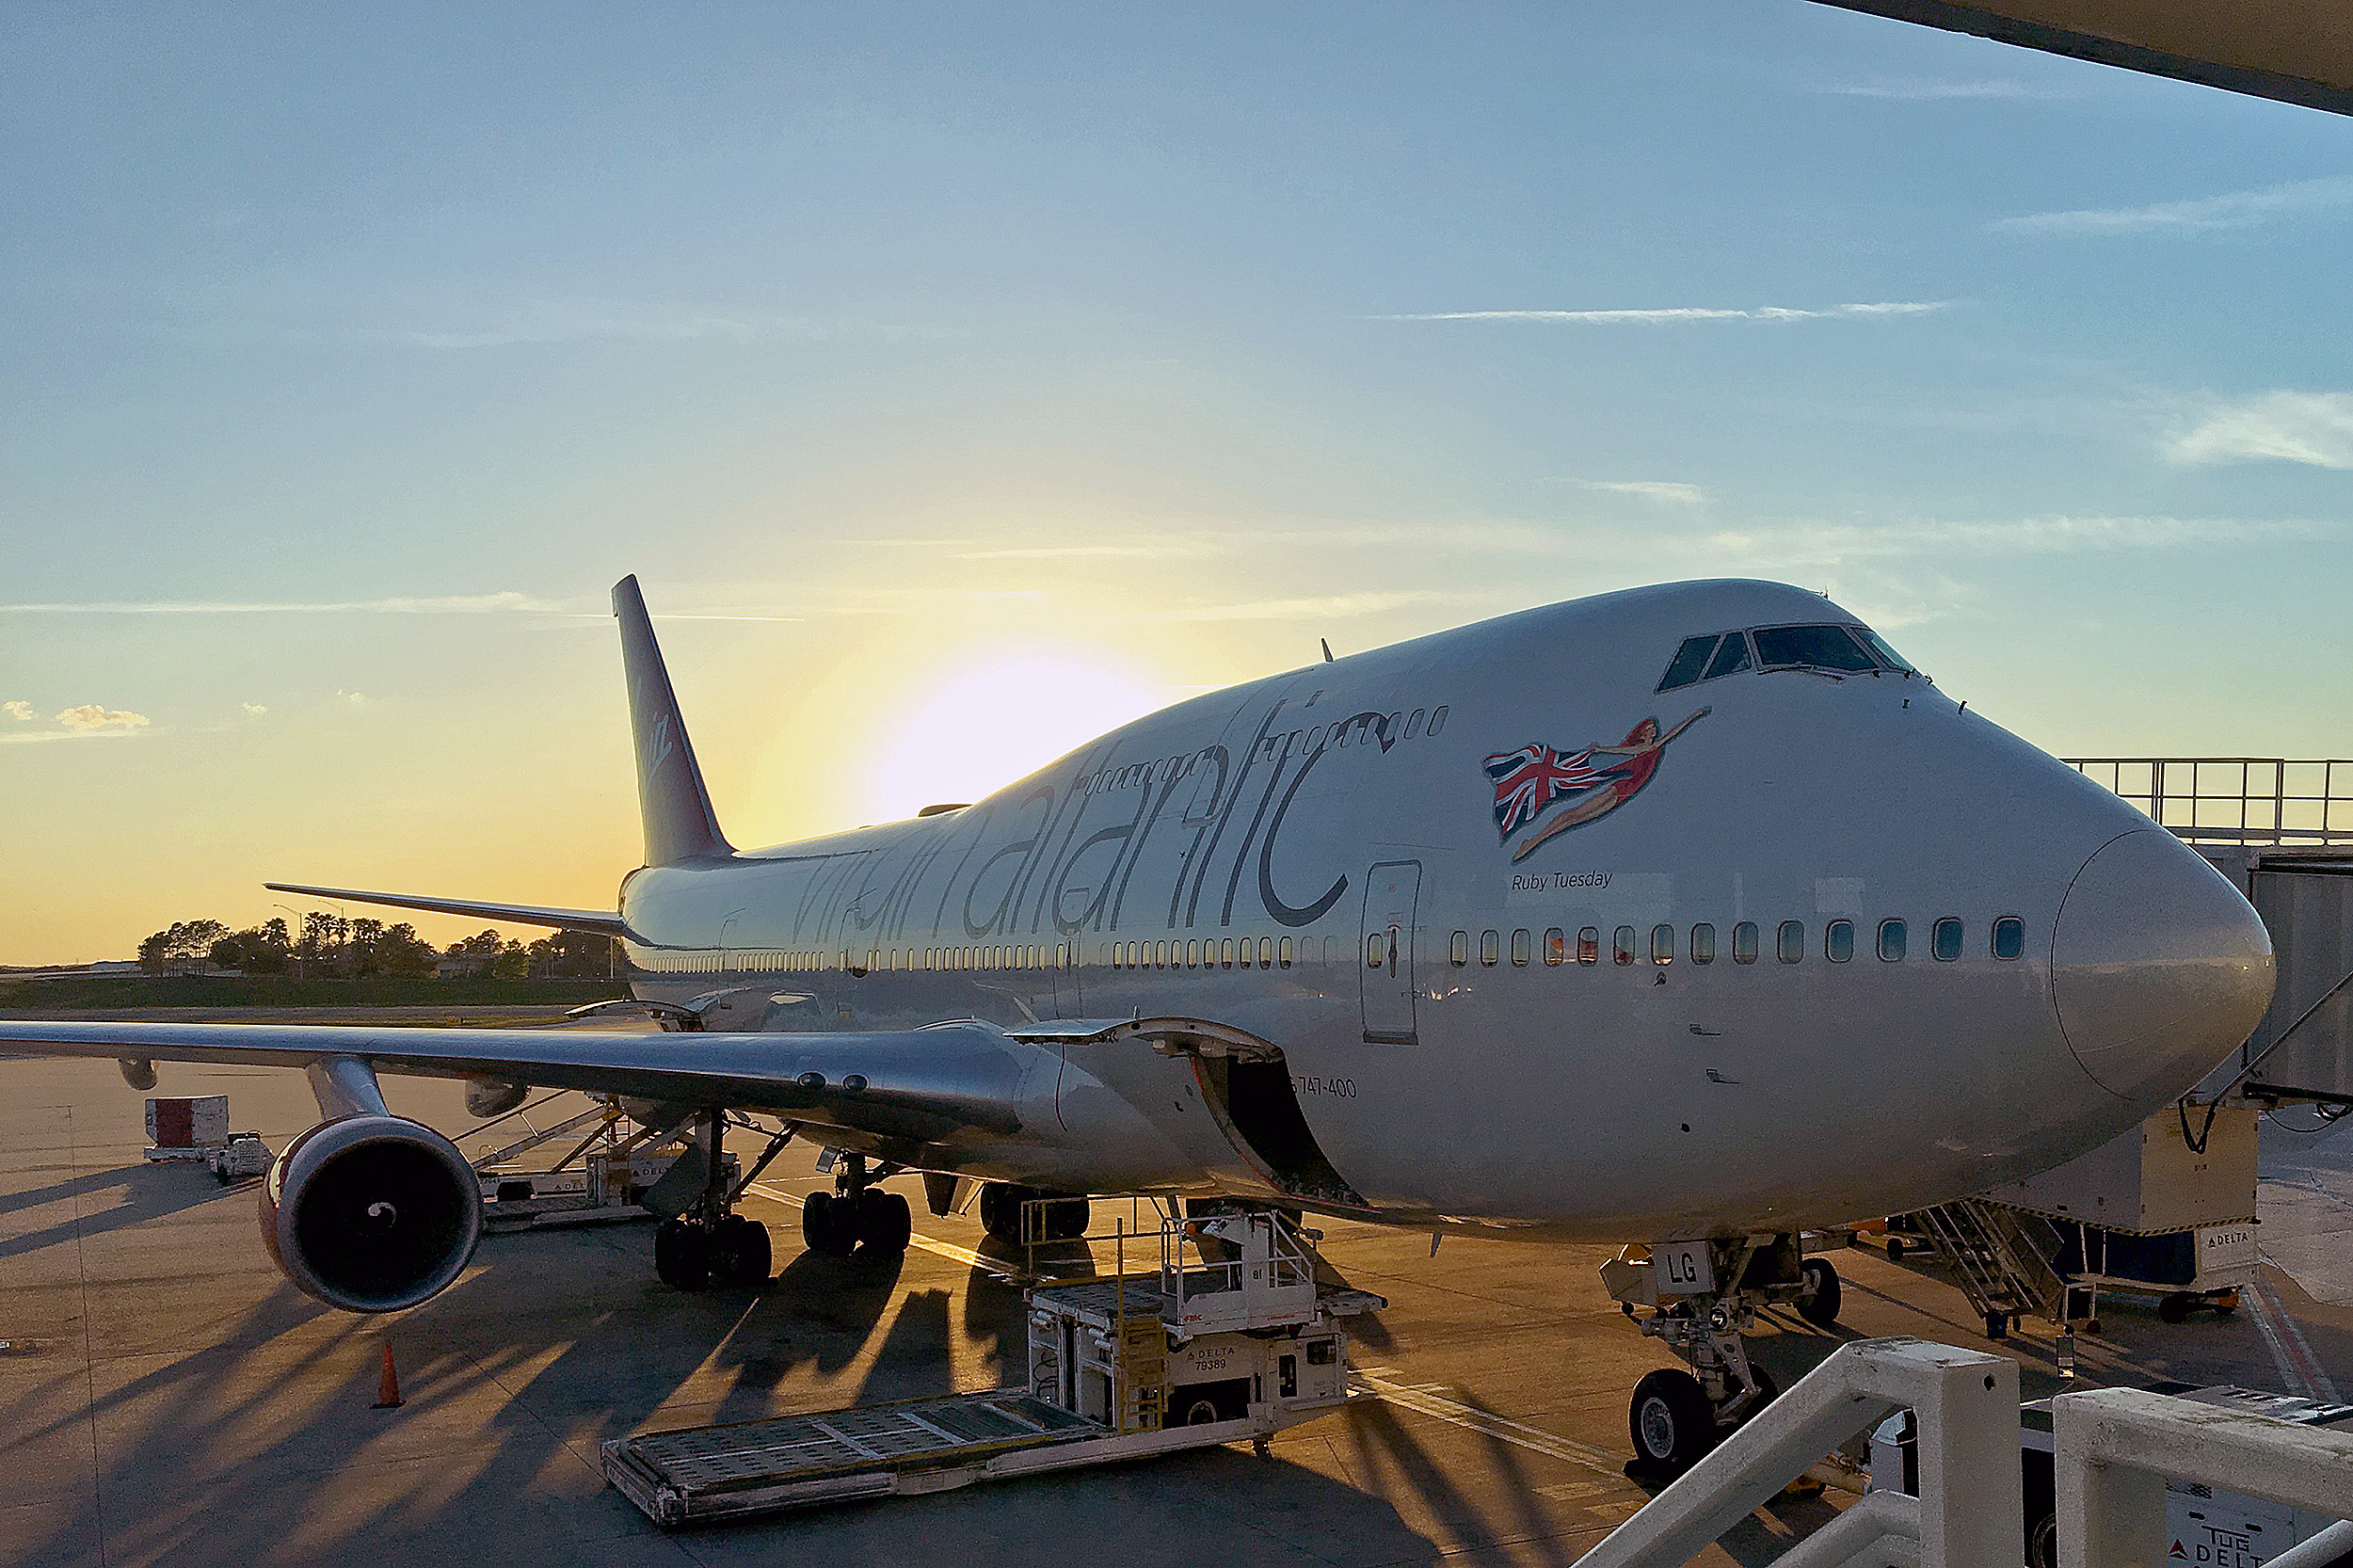 Virgin Atlantic Sunset Sportlovsveckan Flyg